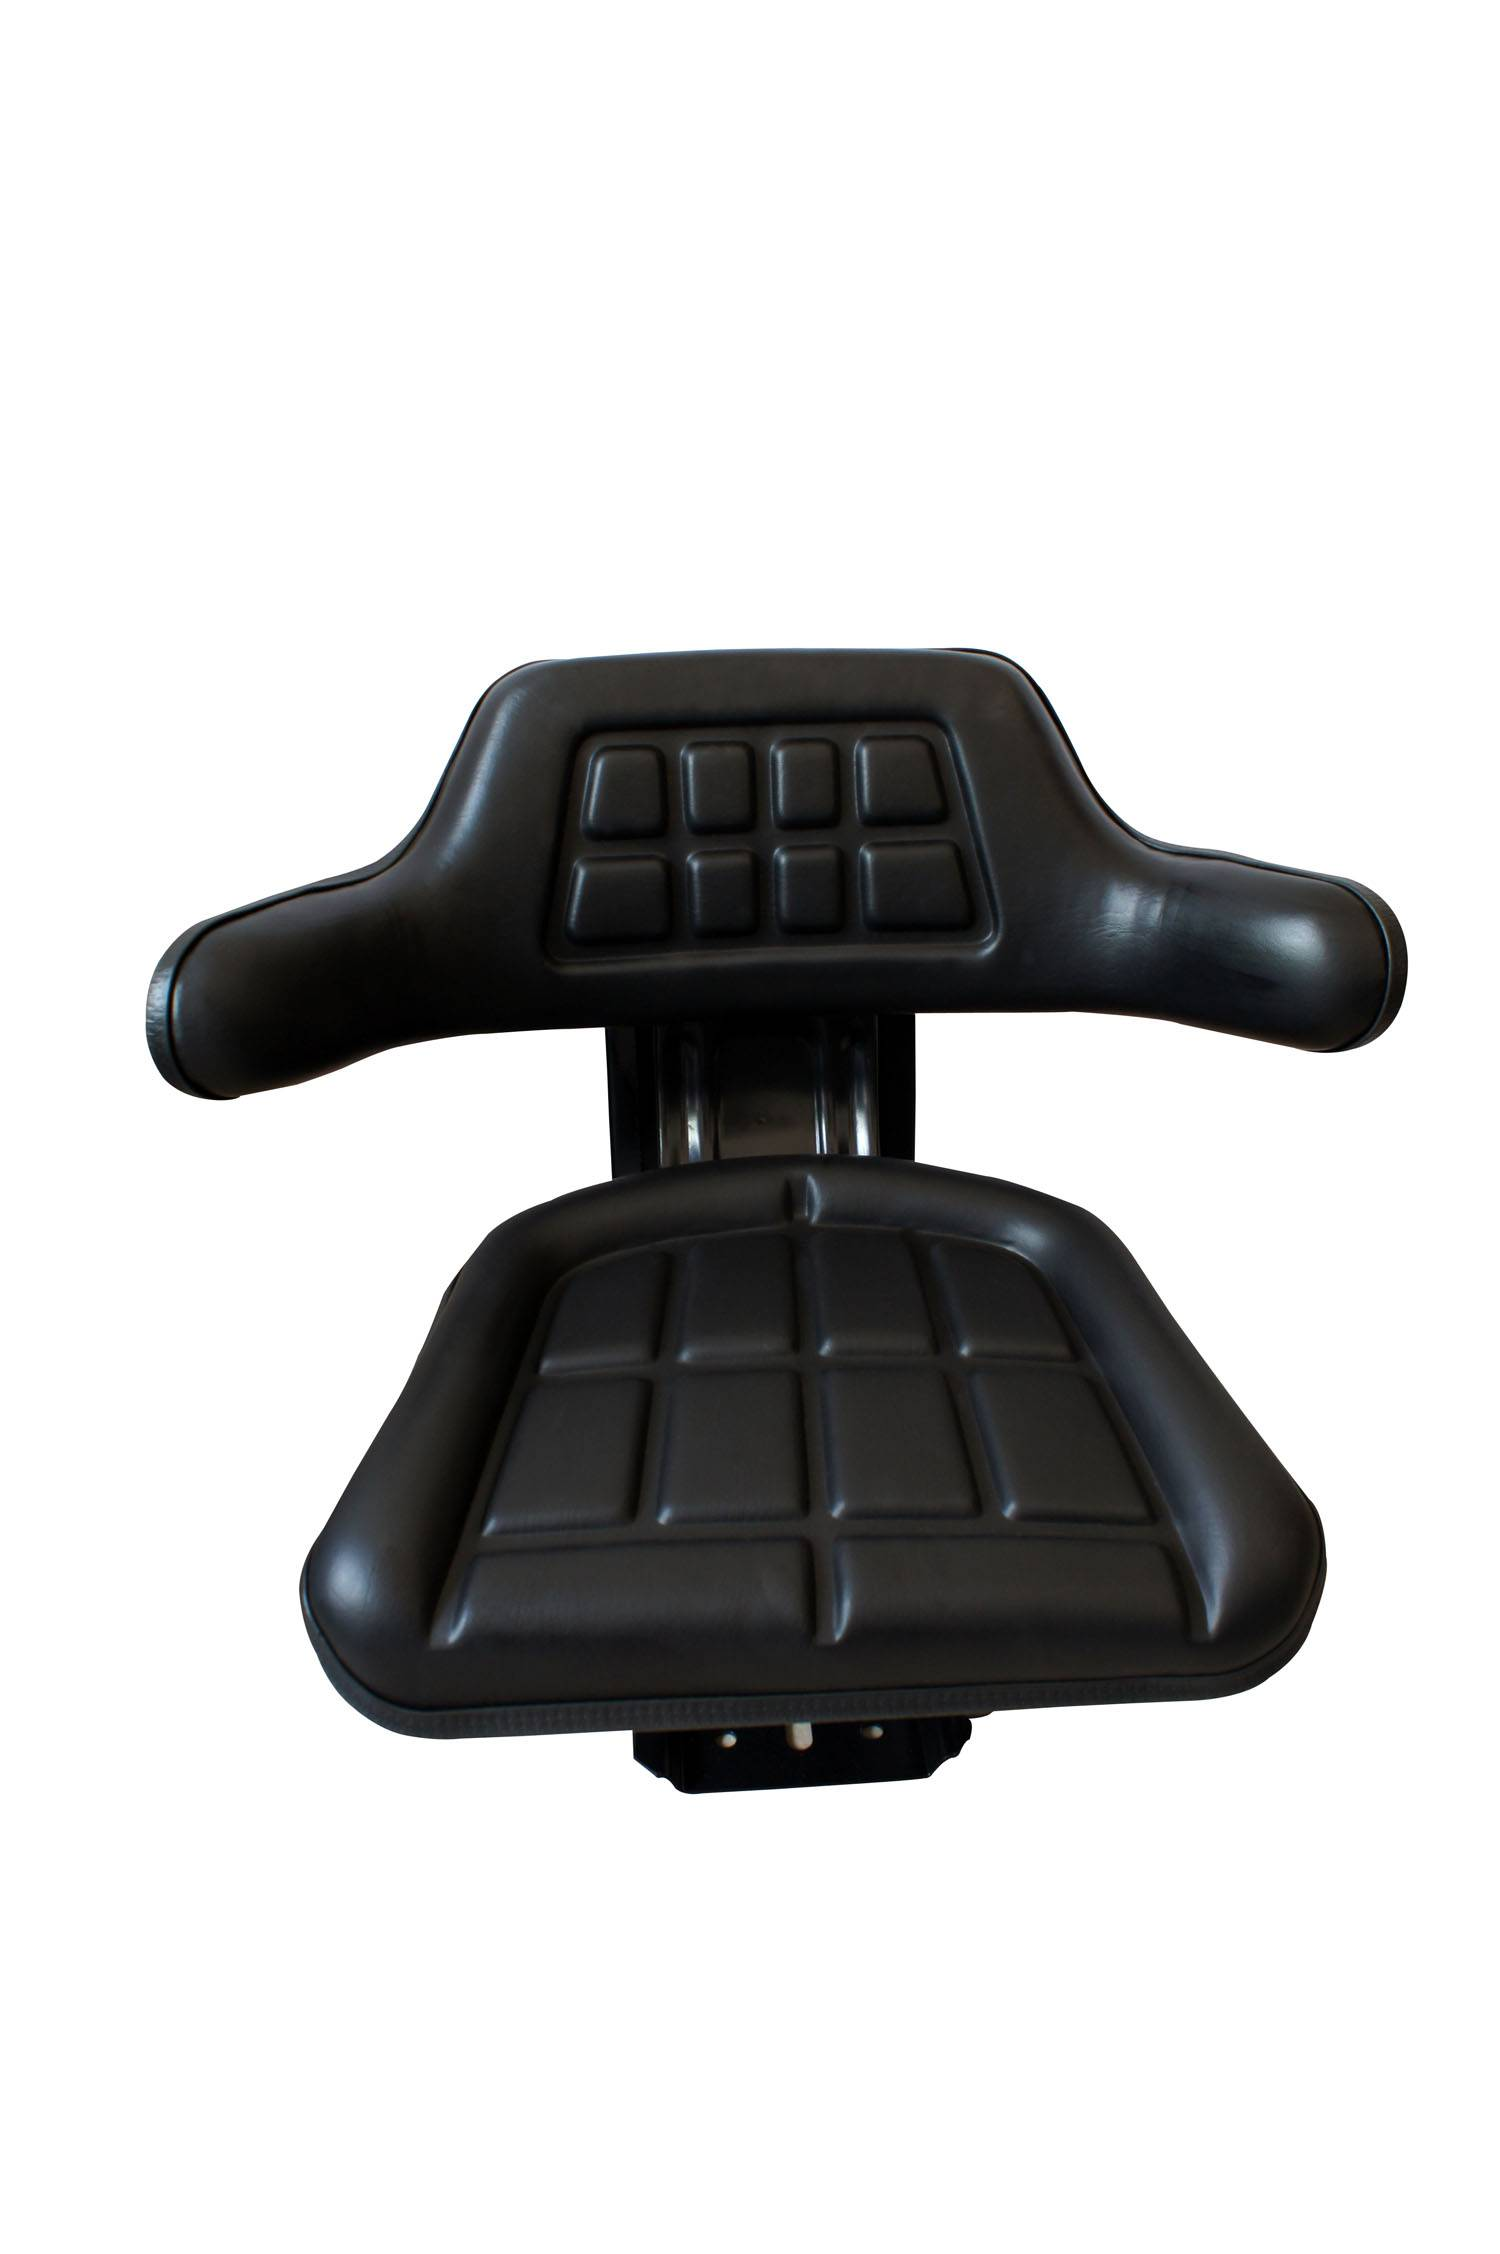 Tractor seat